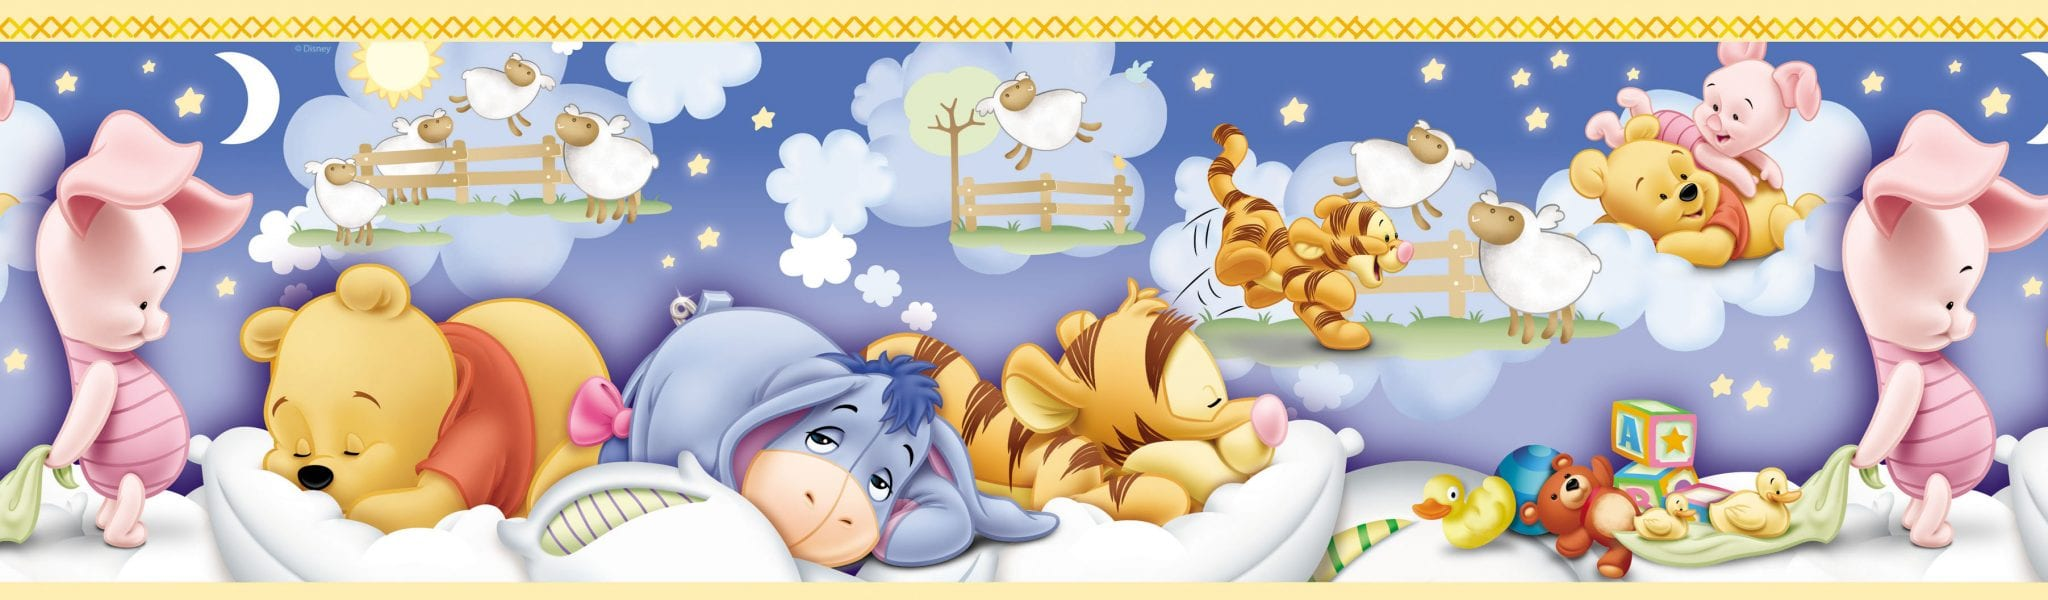 Guarda autoadhesiva Pooh baby DISNEY 1141-0 Decolife Muresco